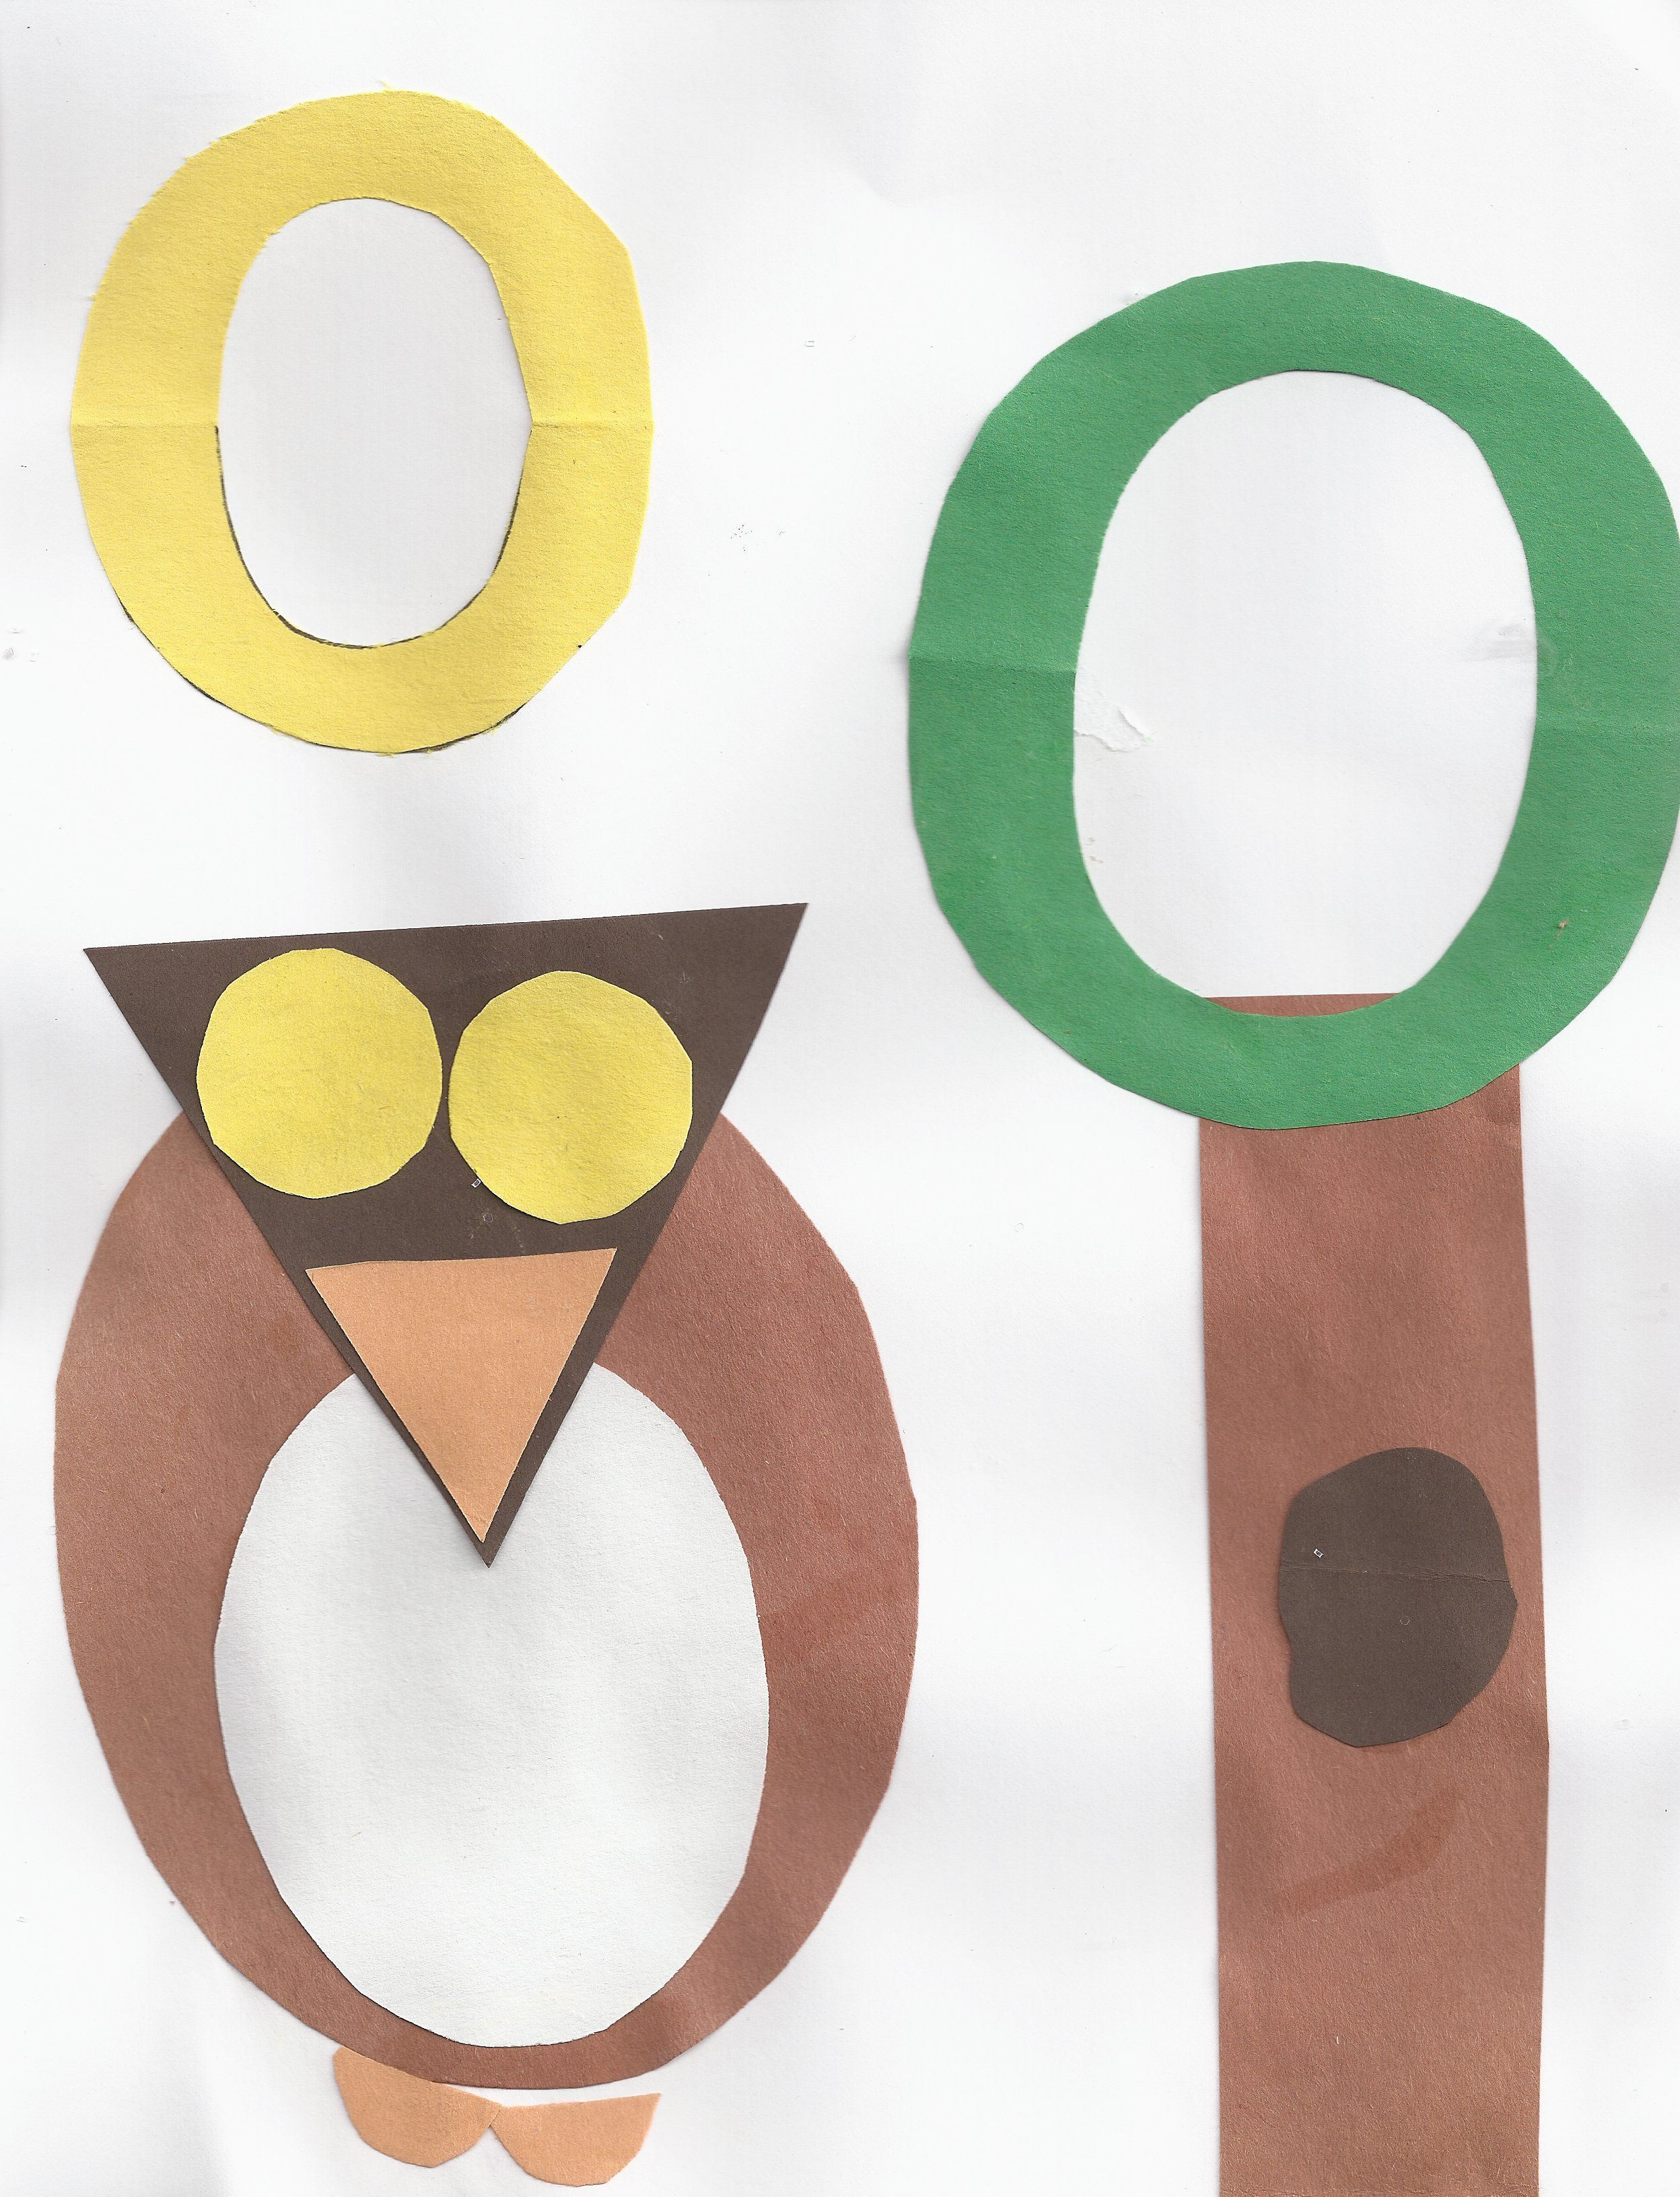 Owl Shapes Ovals Letter O With Images